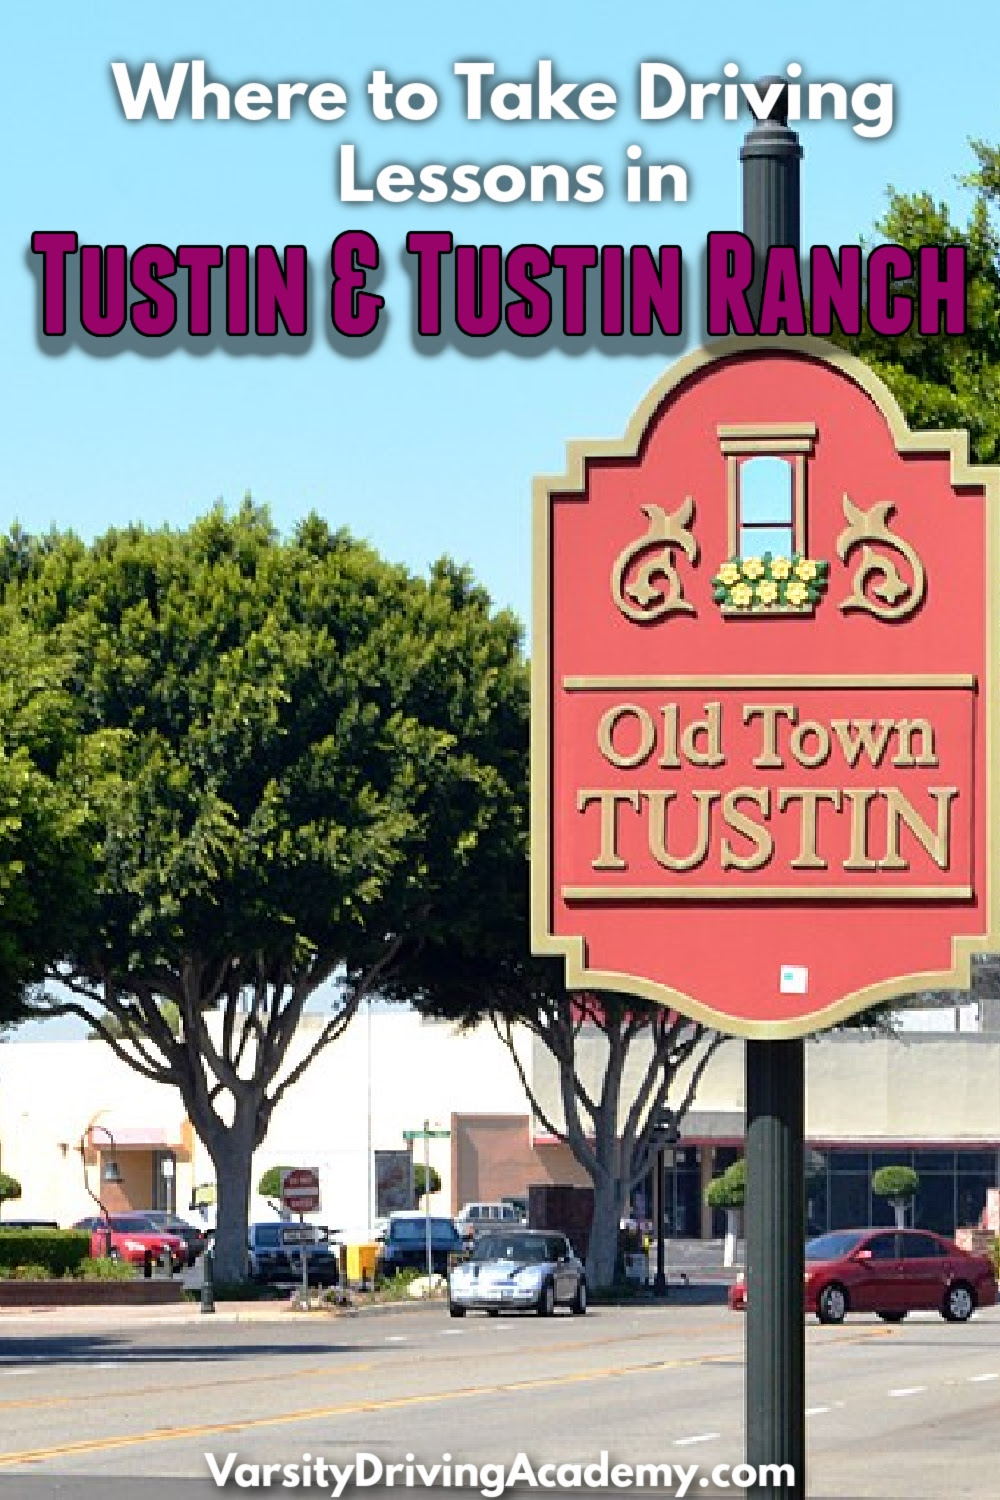 Knowing where to take driving lessons in Tustin and Tustin Ranch means knowing what the best driving school is and what it offers.